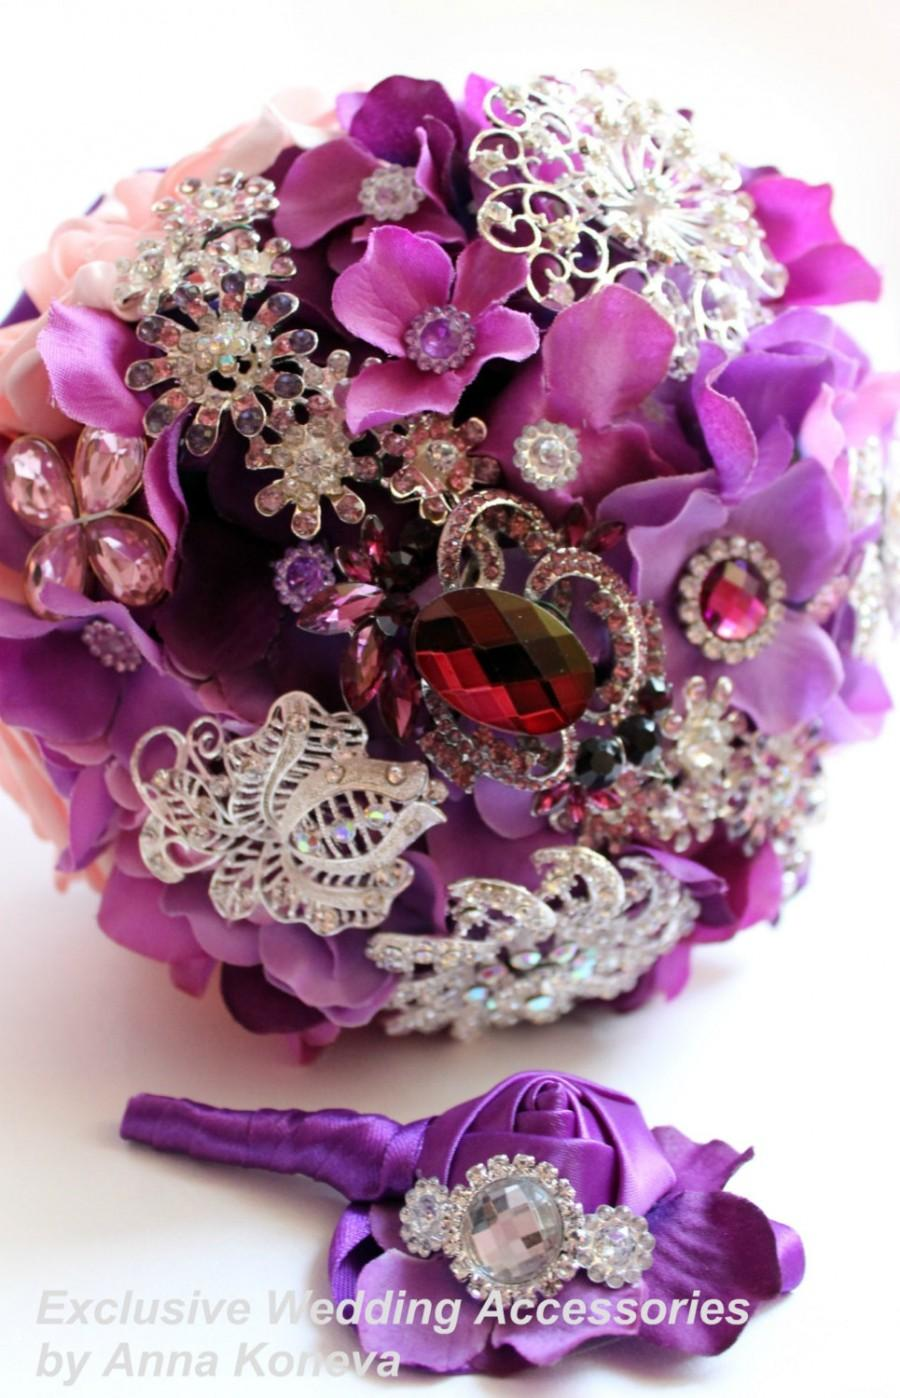 Mariage - Wedding bouquet Purple brooch bouquet Pink bridal brooch bouquet Wedding accessories Eggplant purple bouquet Pink brooch bouquet Roses